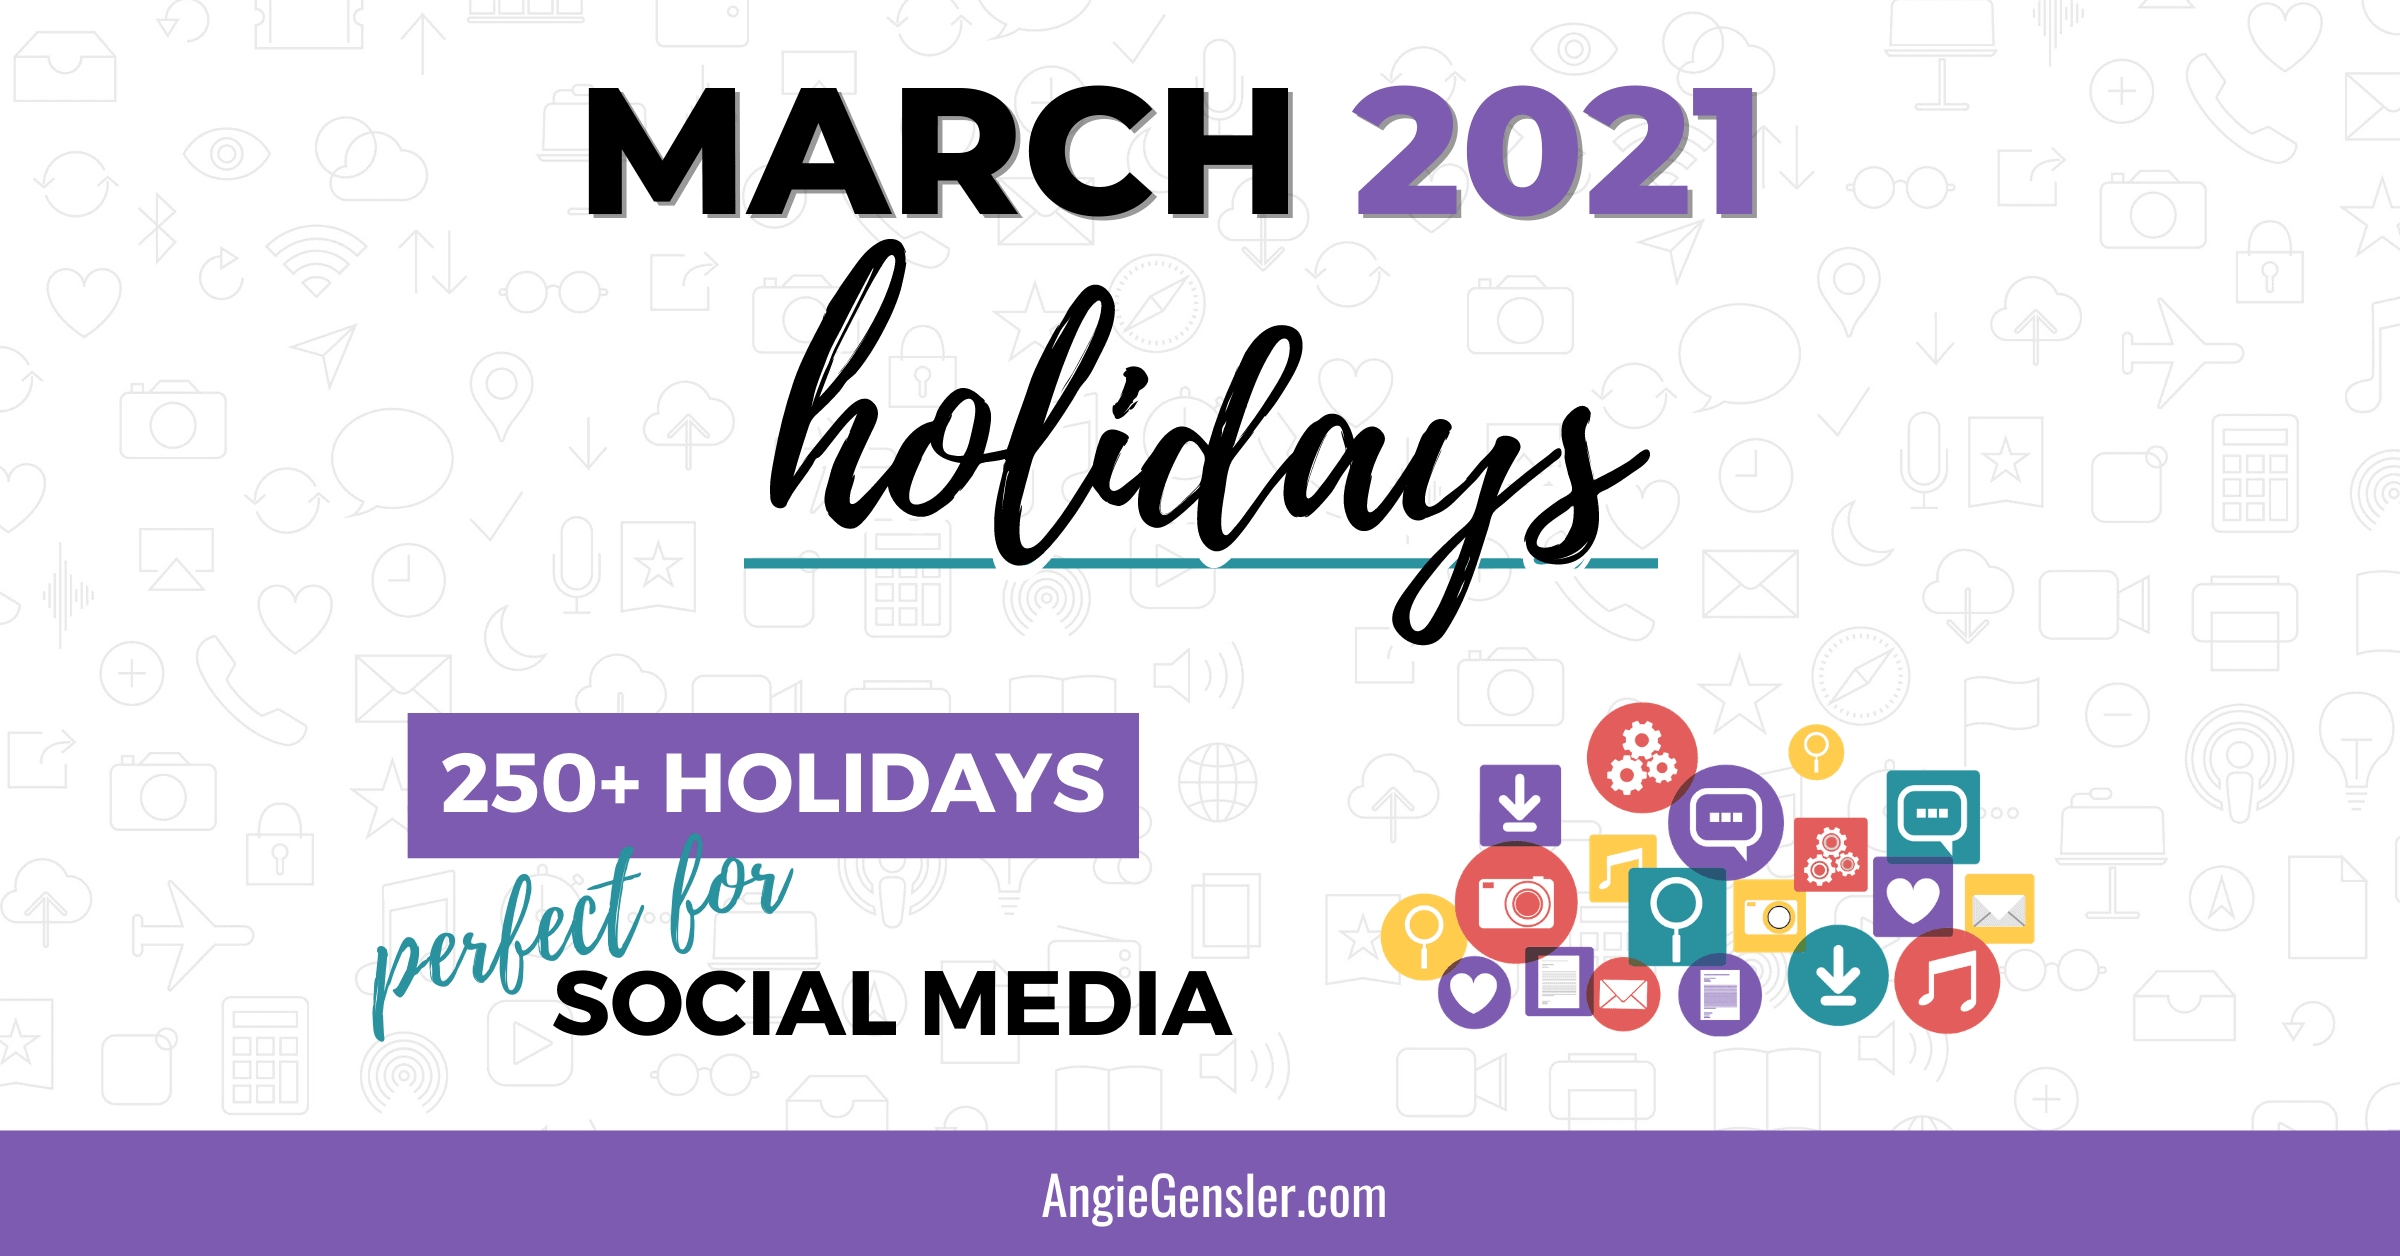 March 2021 Holidays + Fun, Weird And Special Dates - Angie